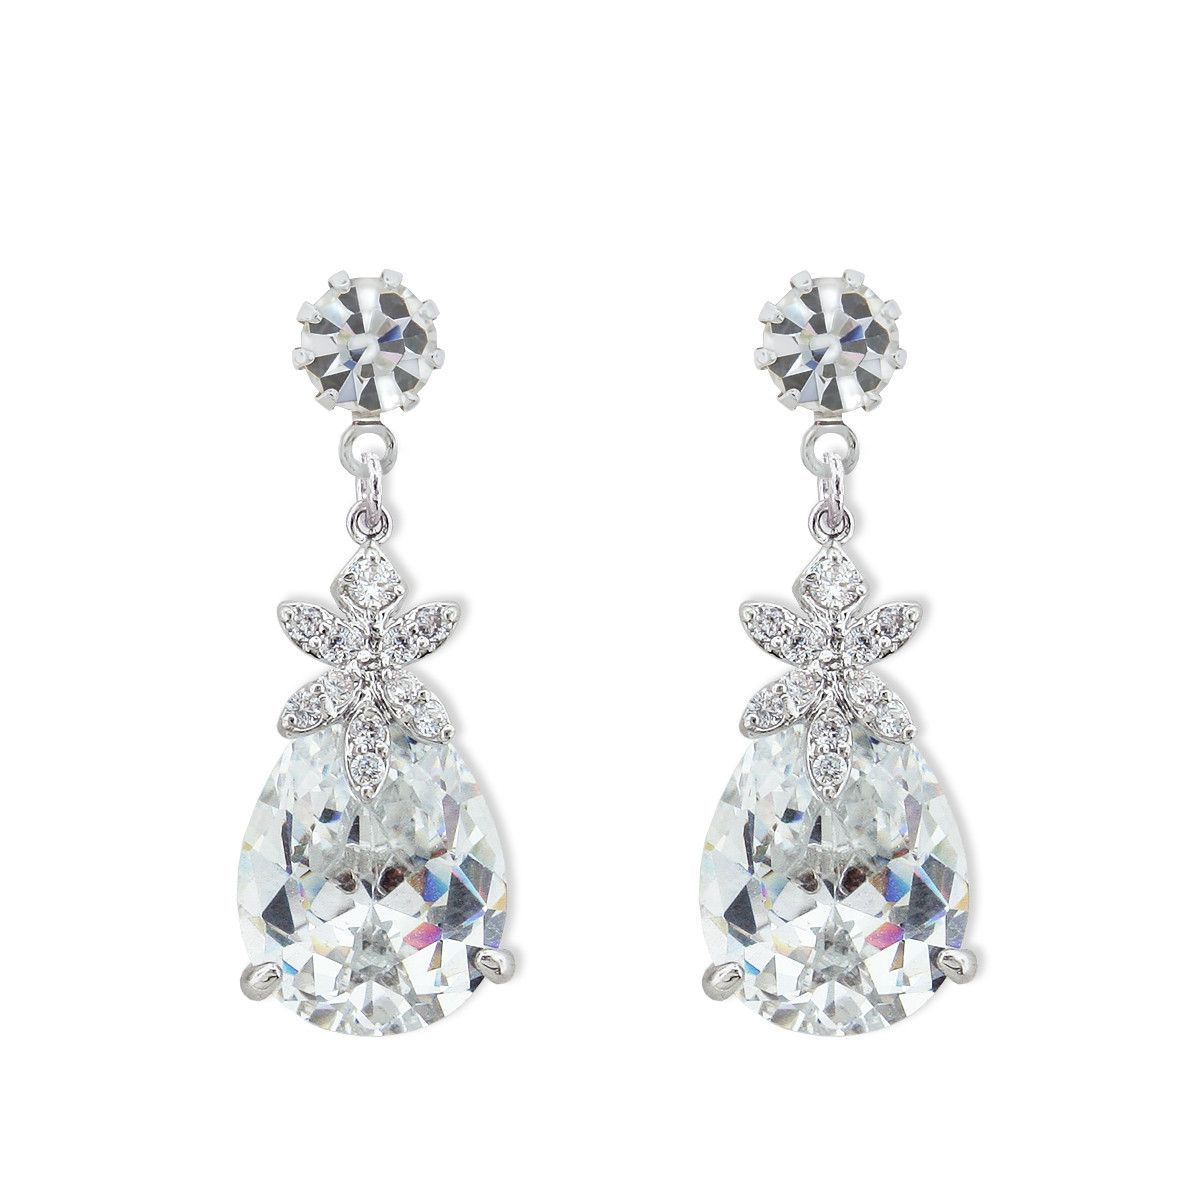 Glitzy CZ Drops - Perfect for adding a little pop to your look.  Brilliant CZ stones with Swarovski® prong-set crystal at the top.  Post backing. Non-tarnishing rhodium plate.